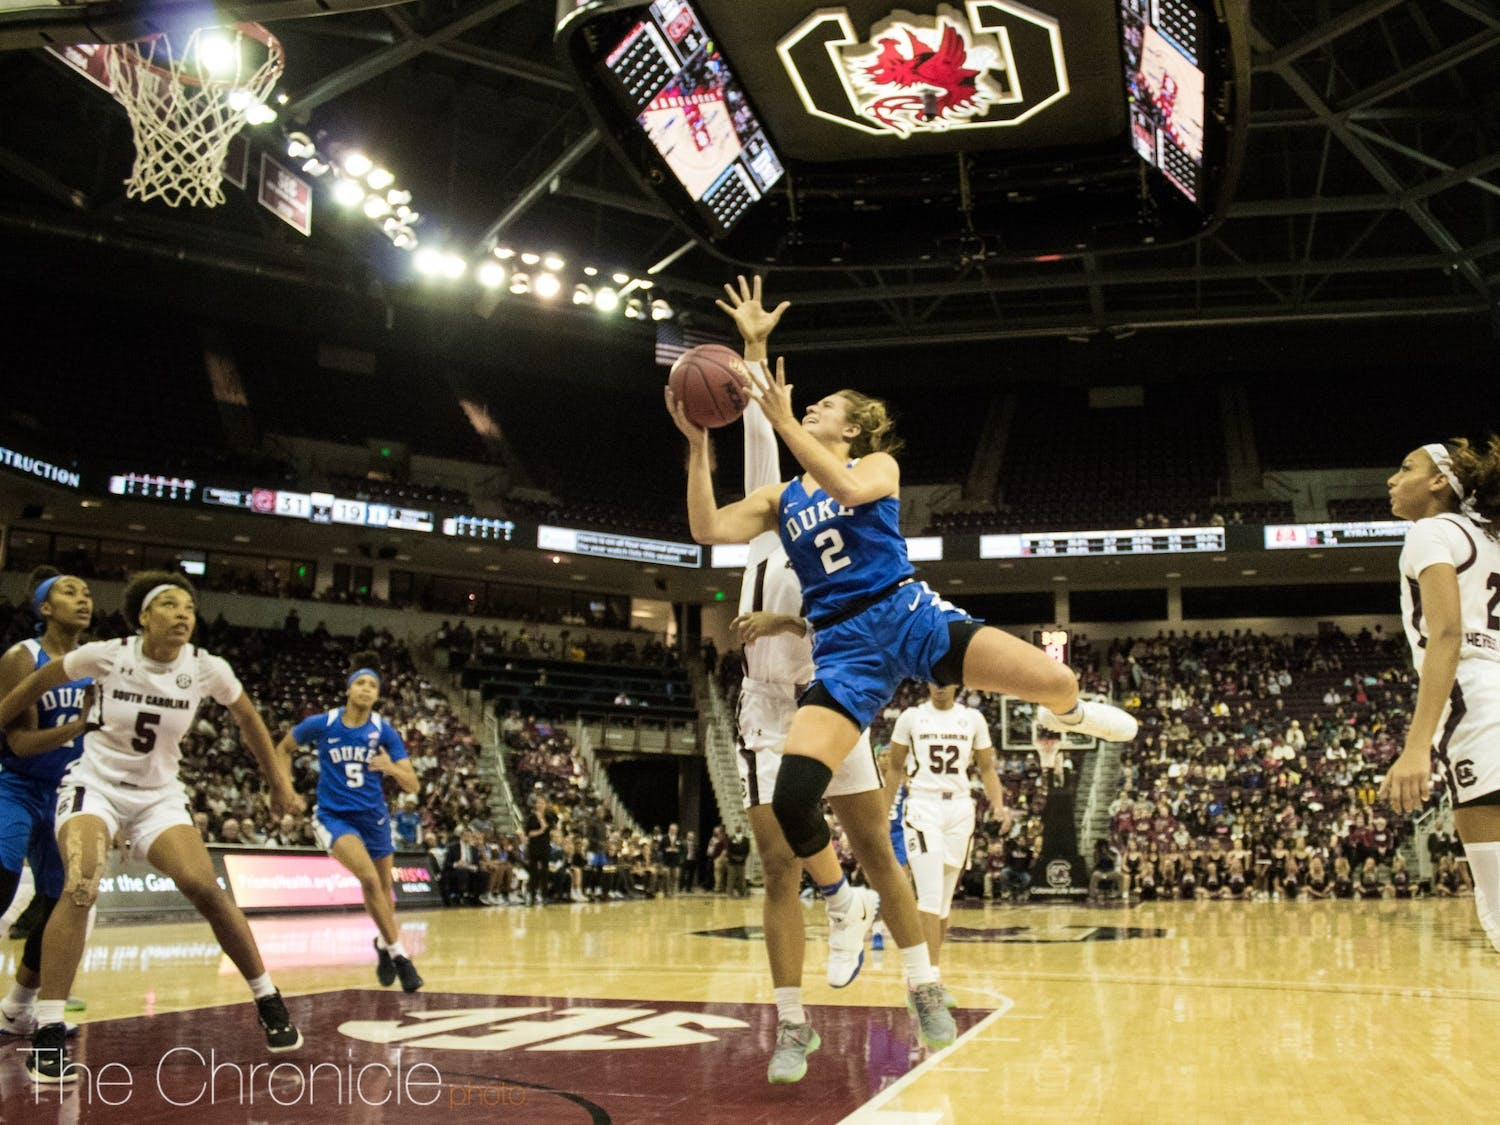 Haley Gorecki led the Blue Devils all year, averaging 18.5 points and 4.4 assists along the way.